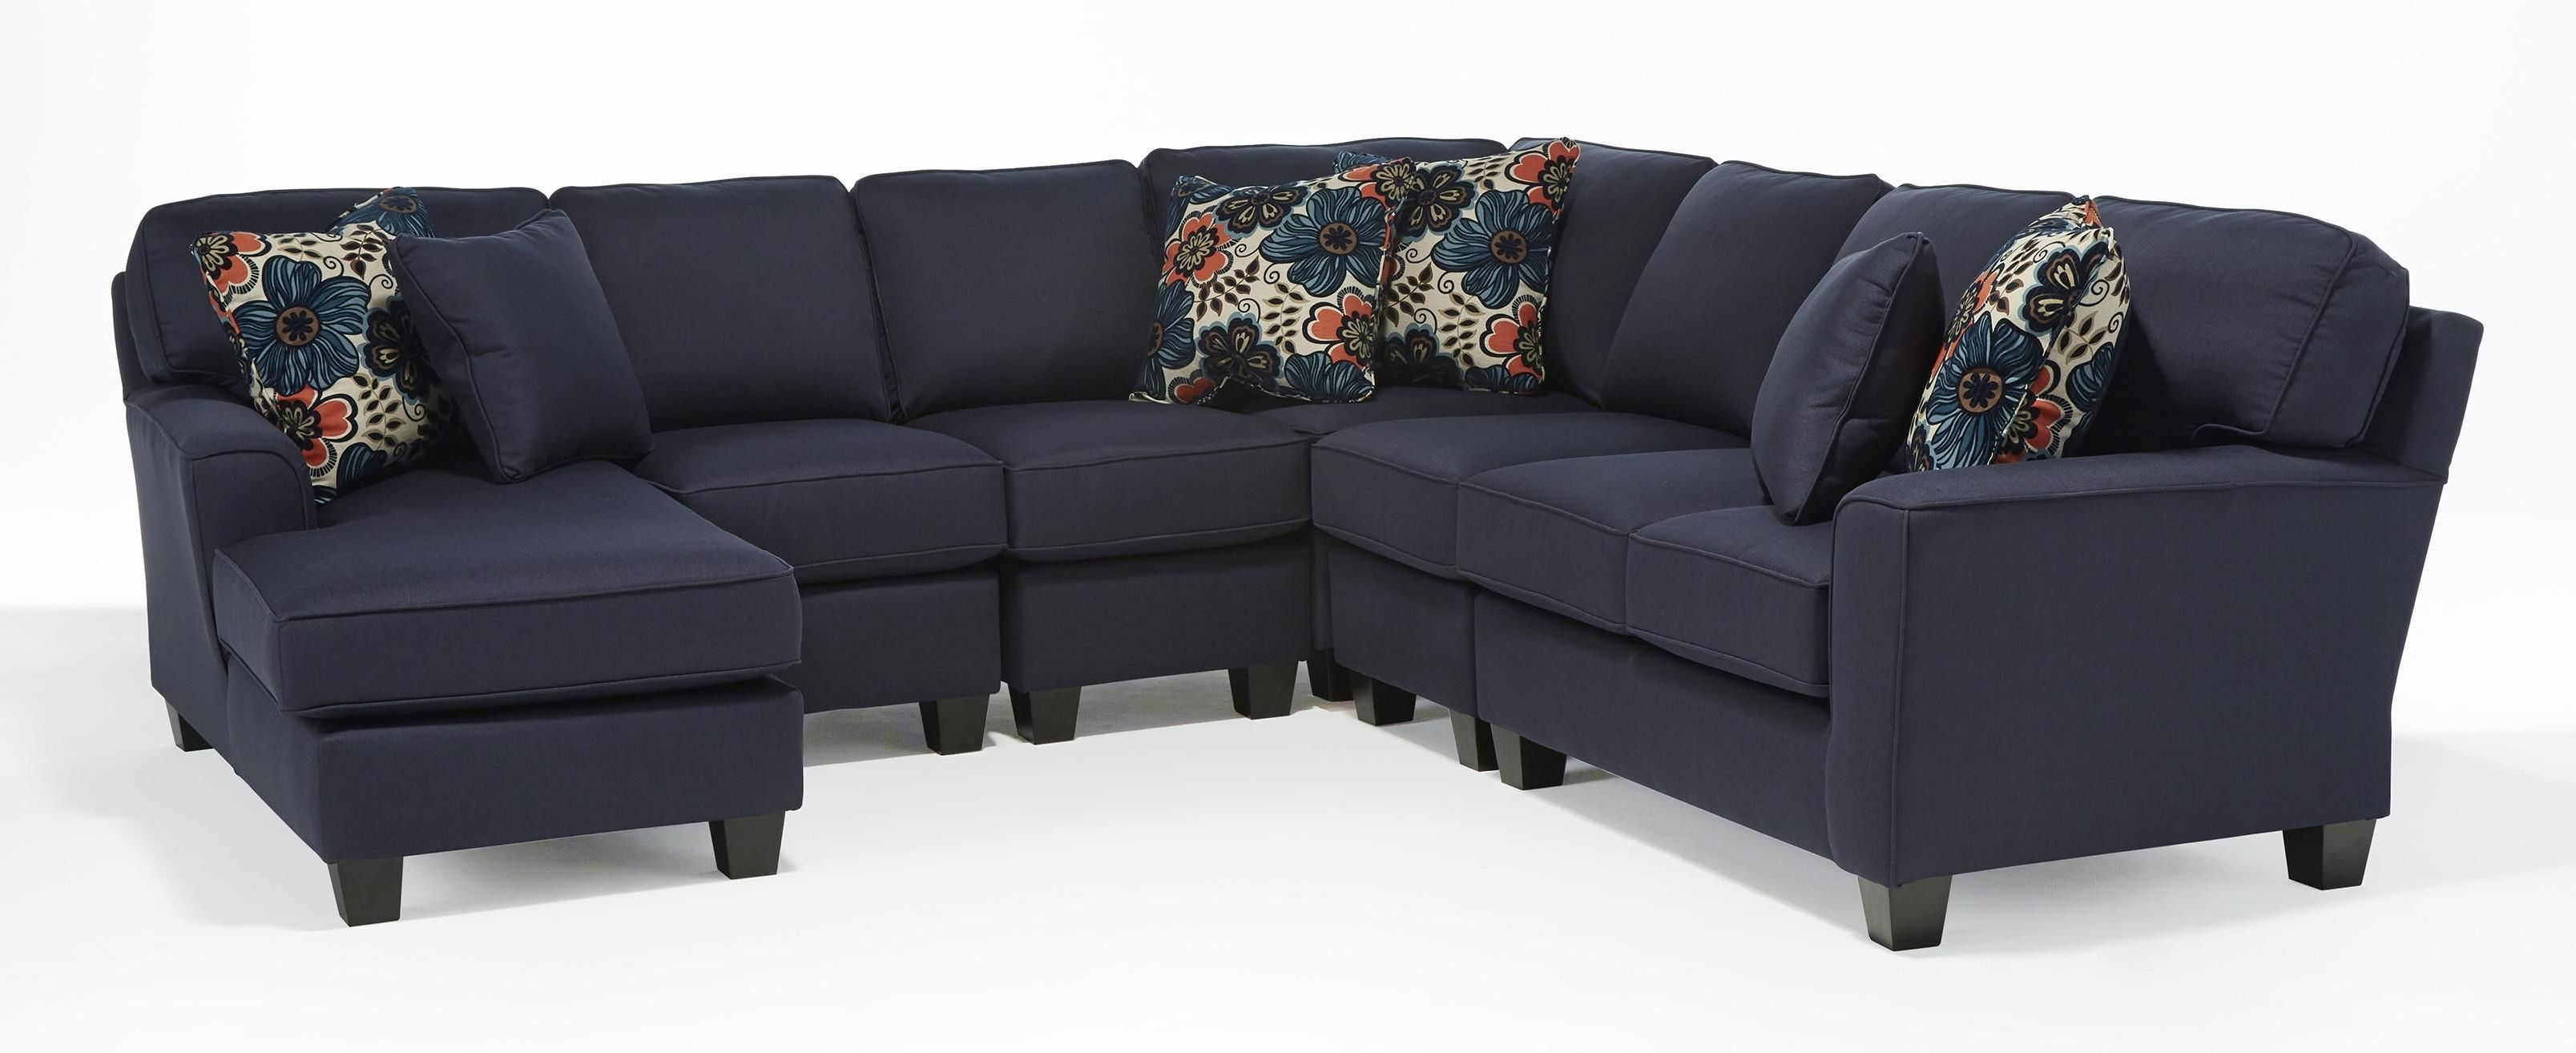 Home Furniture Sectional Sofas With Regard To Preferred Best Home Furnishings Annabel Five Piece Customizable Sectional (View 8 of 15)